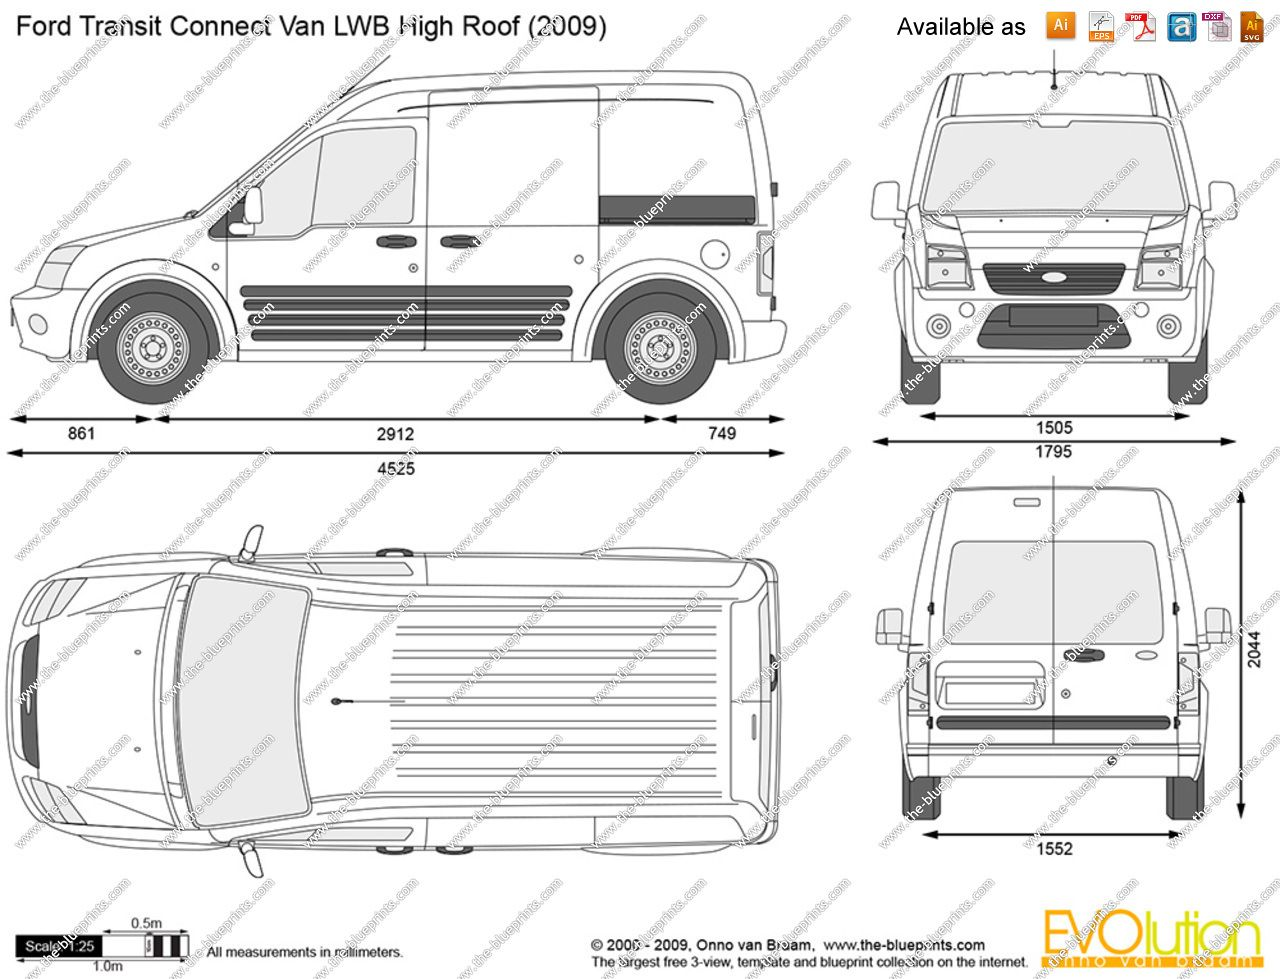 Awesome Ford Transit Connect Interior Dimensions A